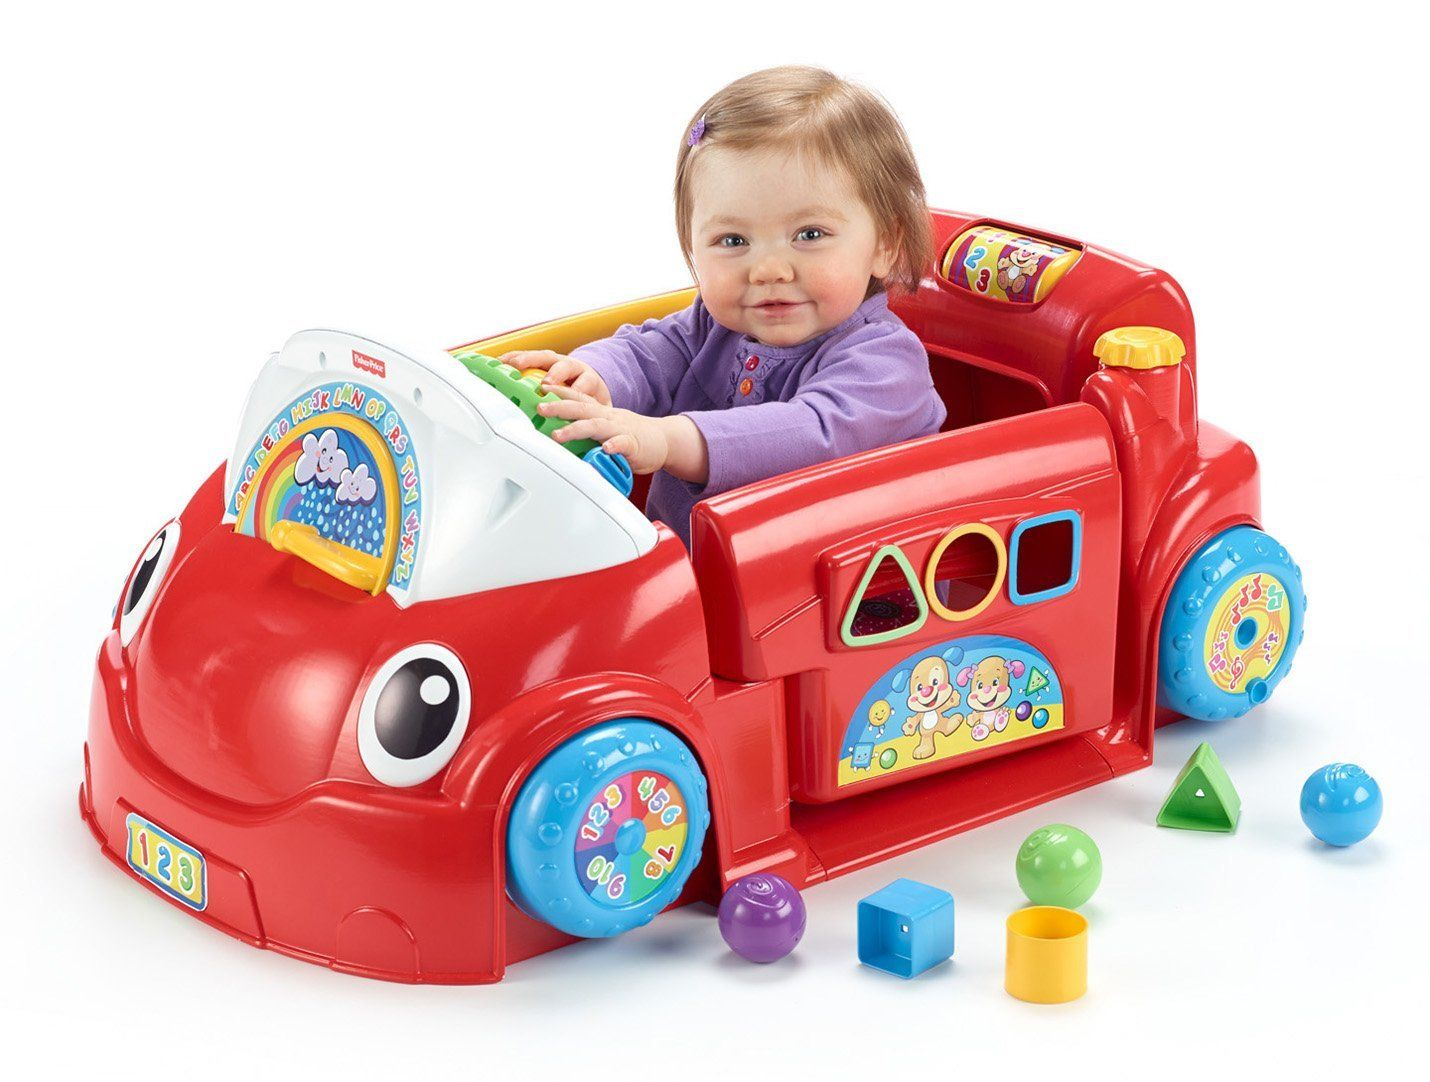 Toddler Car Dashboard Gifts For Babies And Toddlers Mariel S Picks 2013